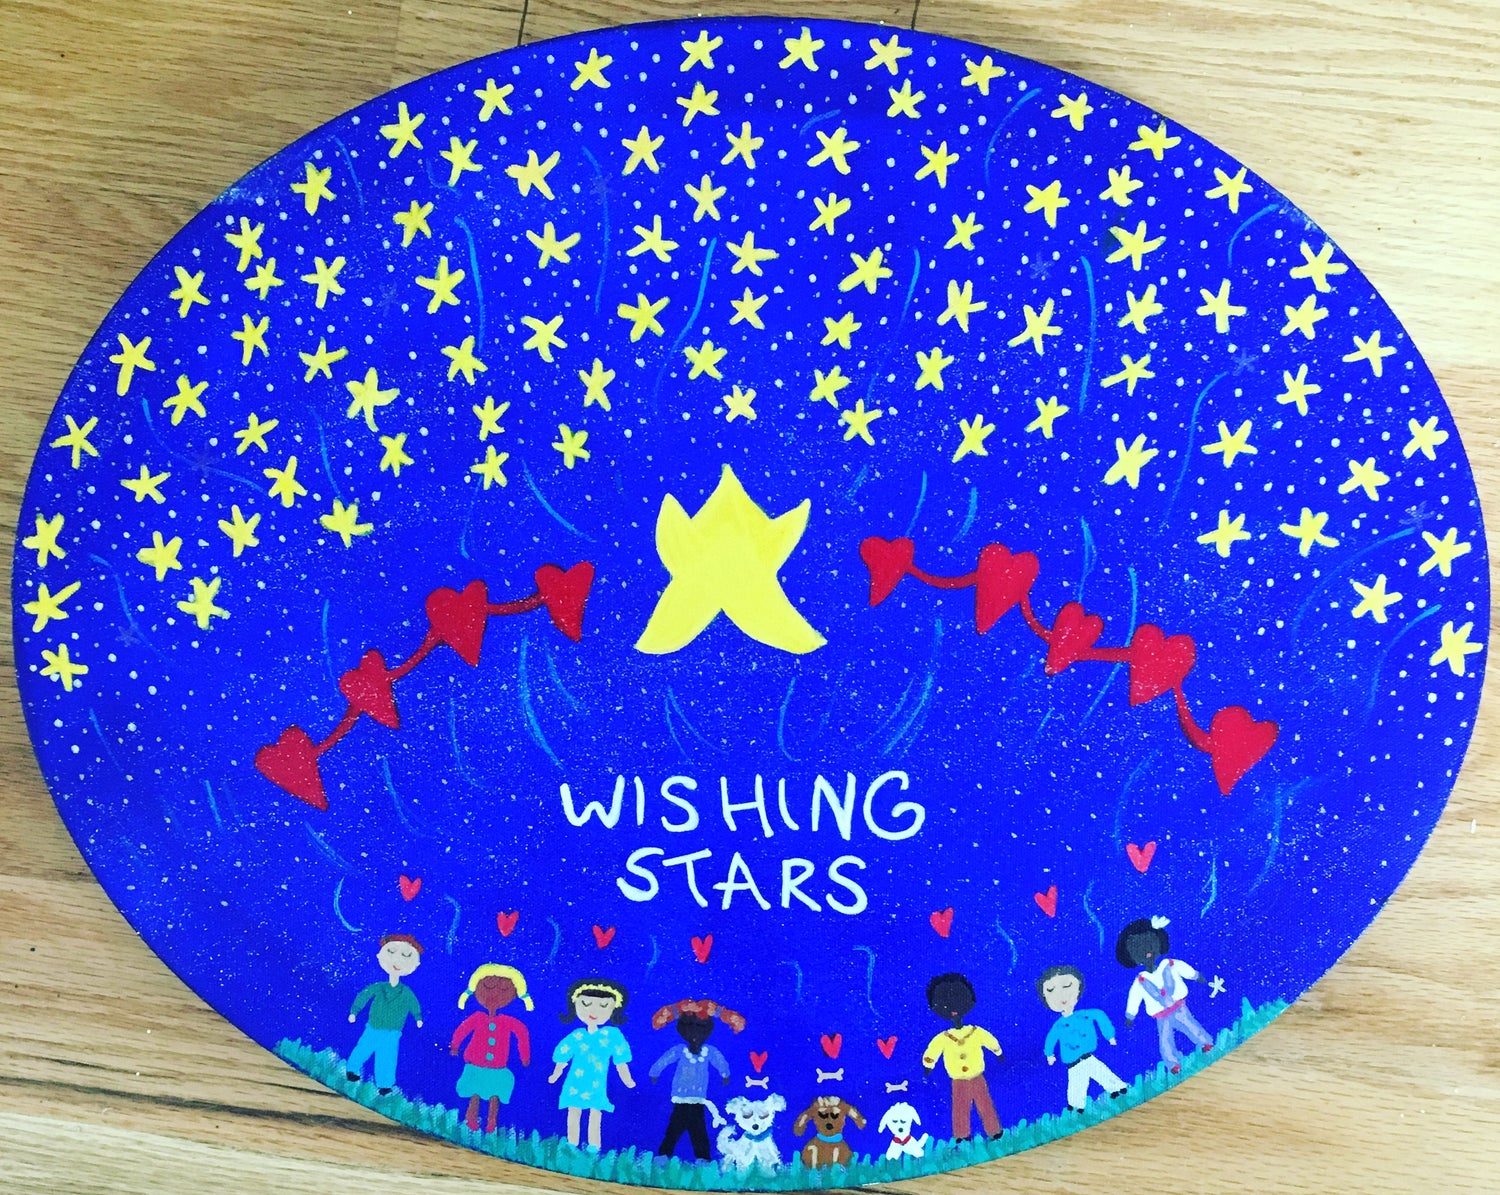 WISHING STARS HEARTS